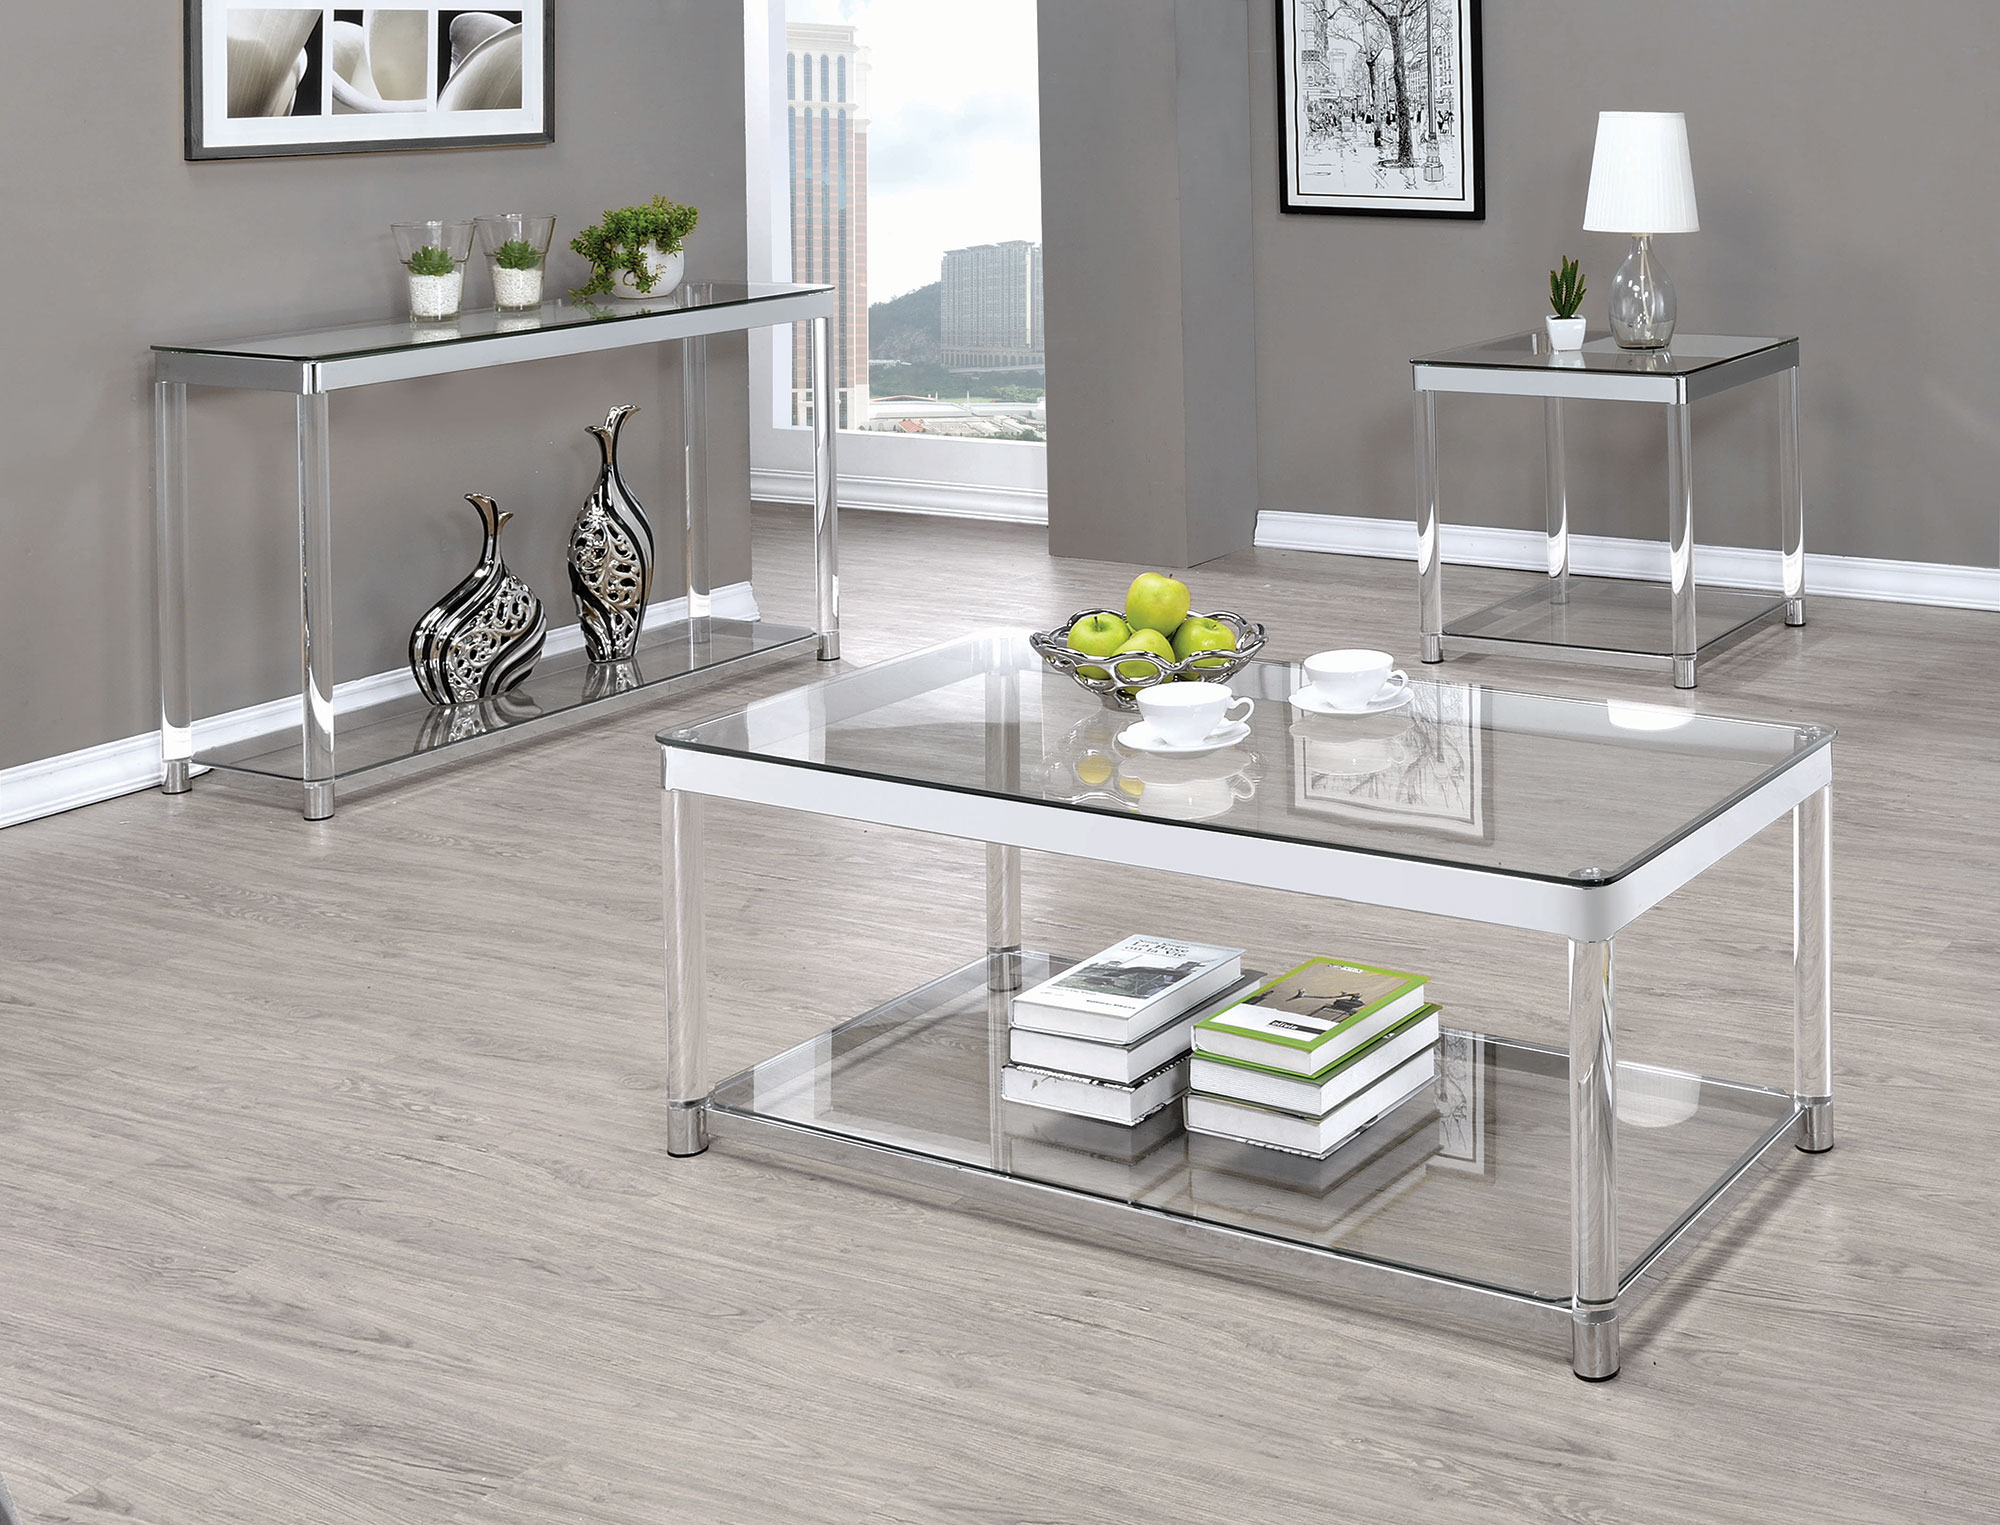 Acrylic Chrome and Glass Coffee Table Collection Las  : 720747 720749 from www.vegashomefurniture.com size 2000 x 1525 jpeg 512kB